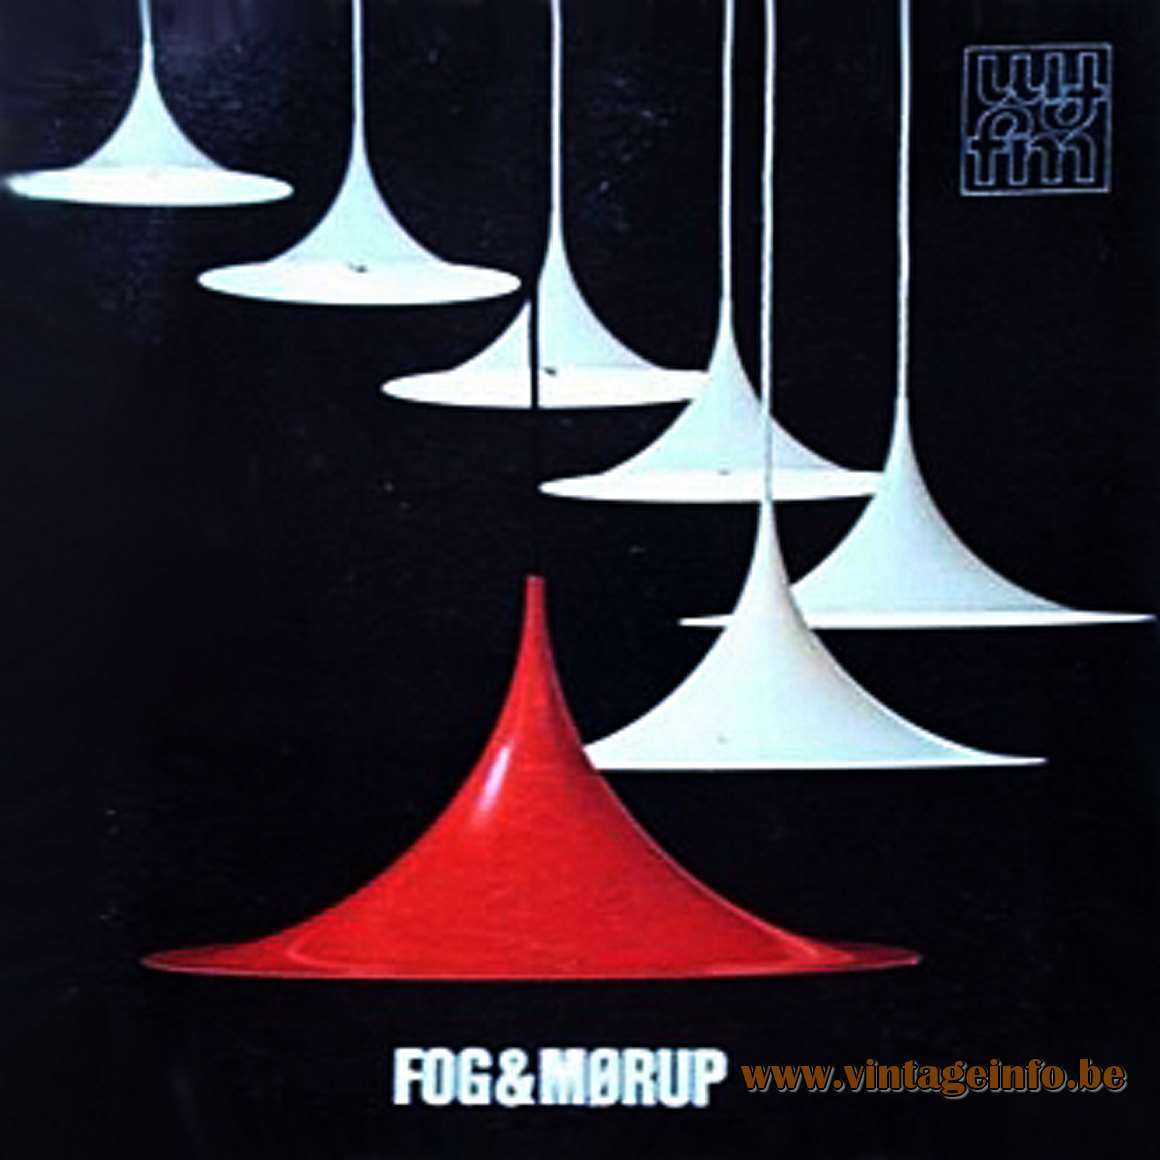 Fog & Morup catalog cover